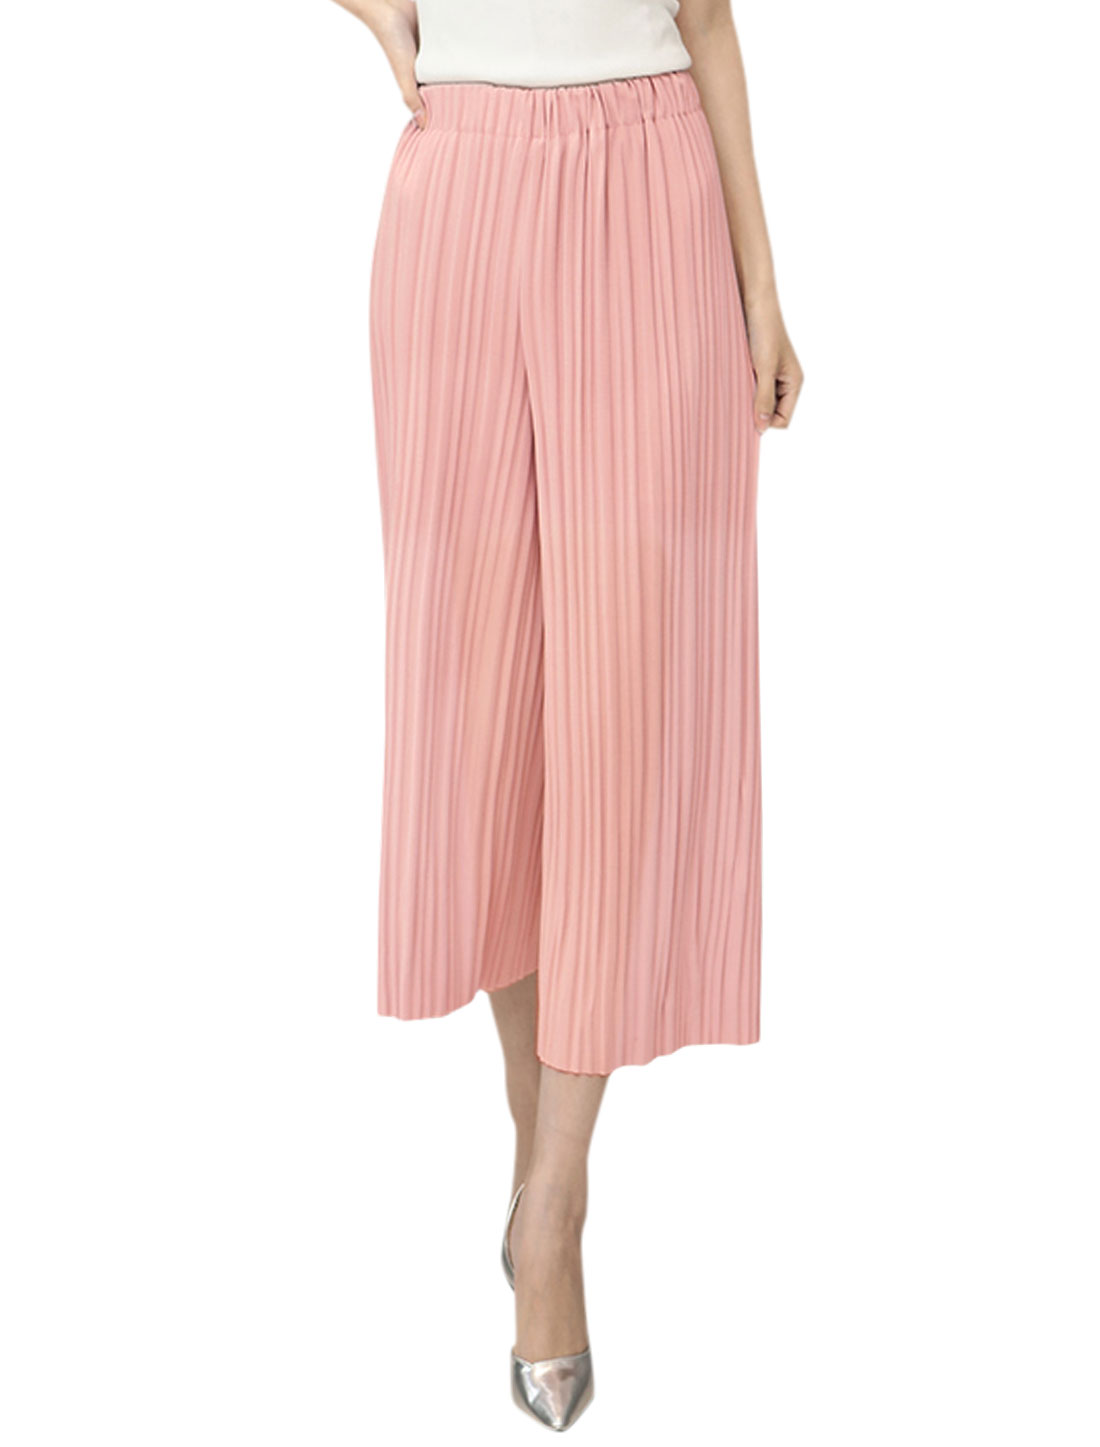 Women High Waist Semi Sheer Pleated Cropped Culottes Pink XS